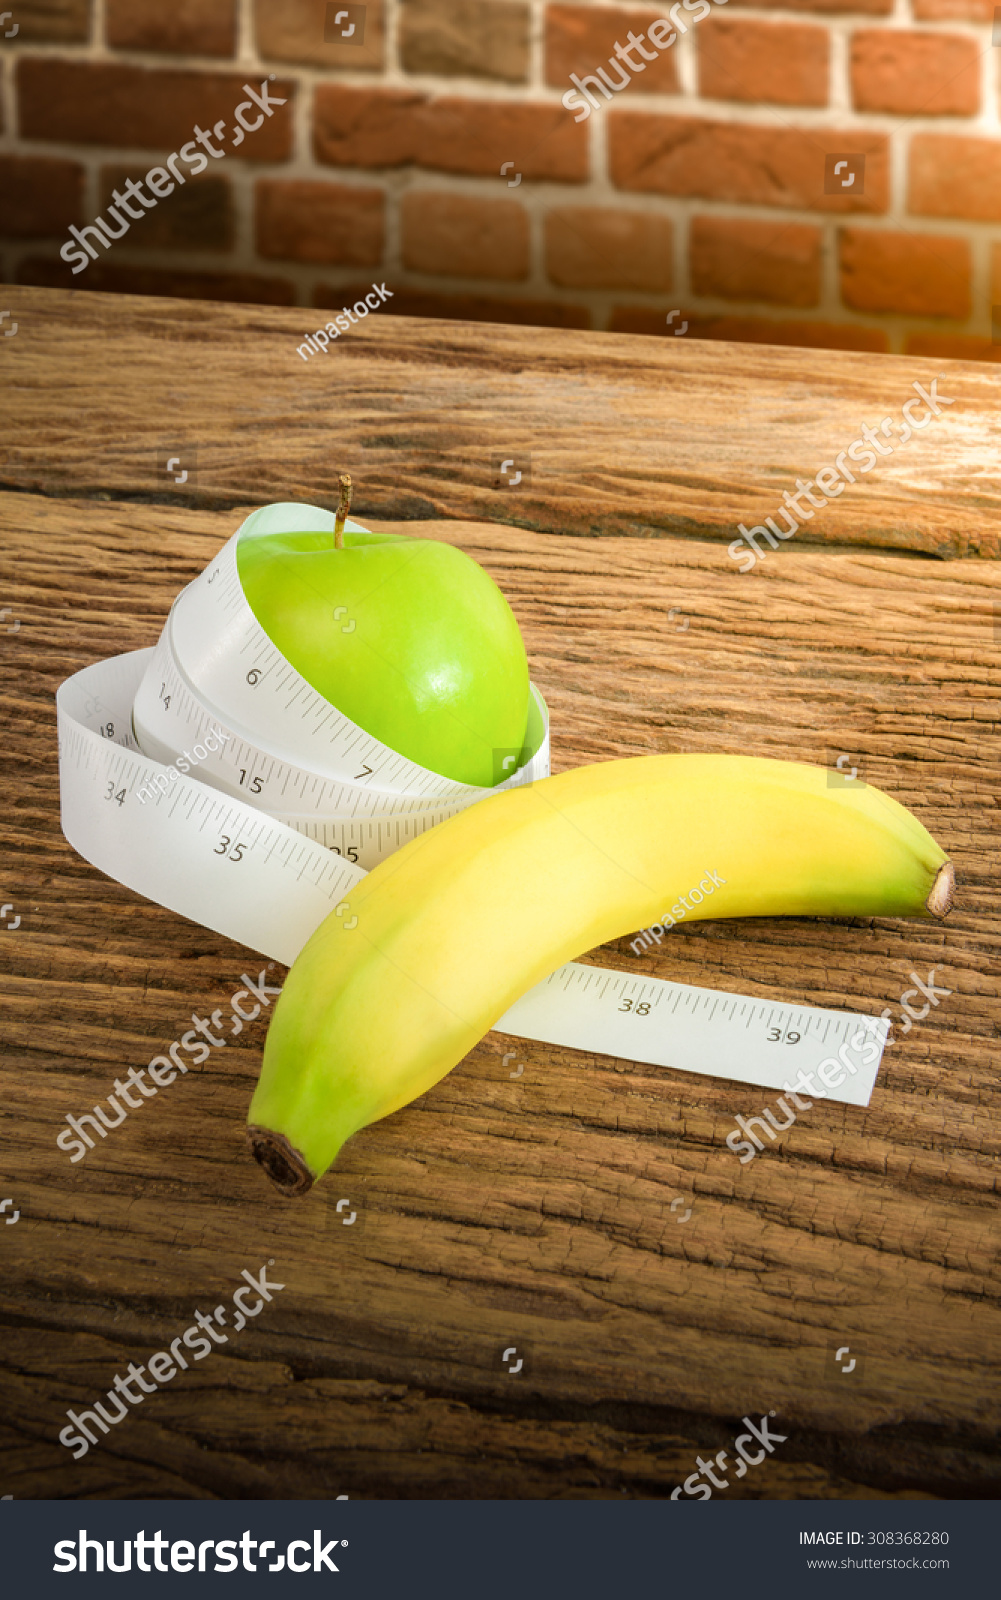 Measuring tape wrapped around green apple stock photo 308368280 measuring tape wrapped around a green apple and banana on wooden table as a symbol of biocorpaavc